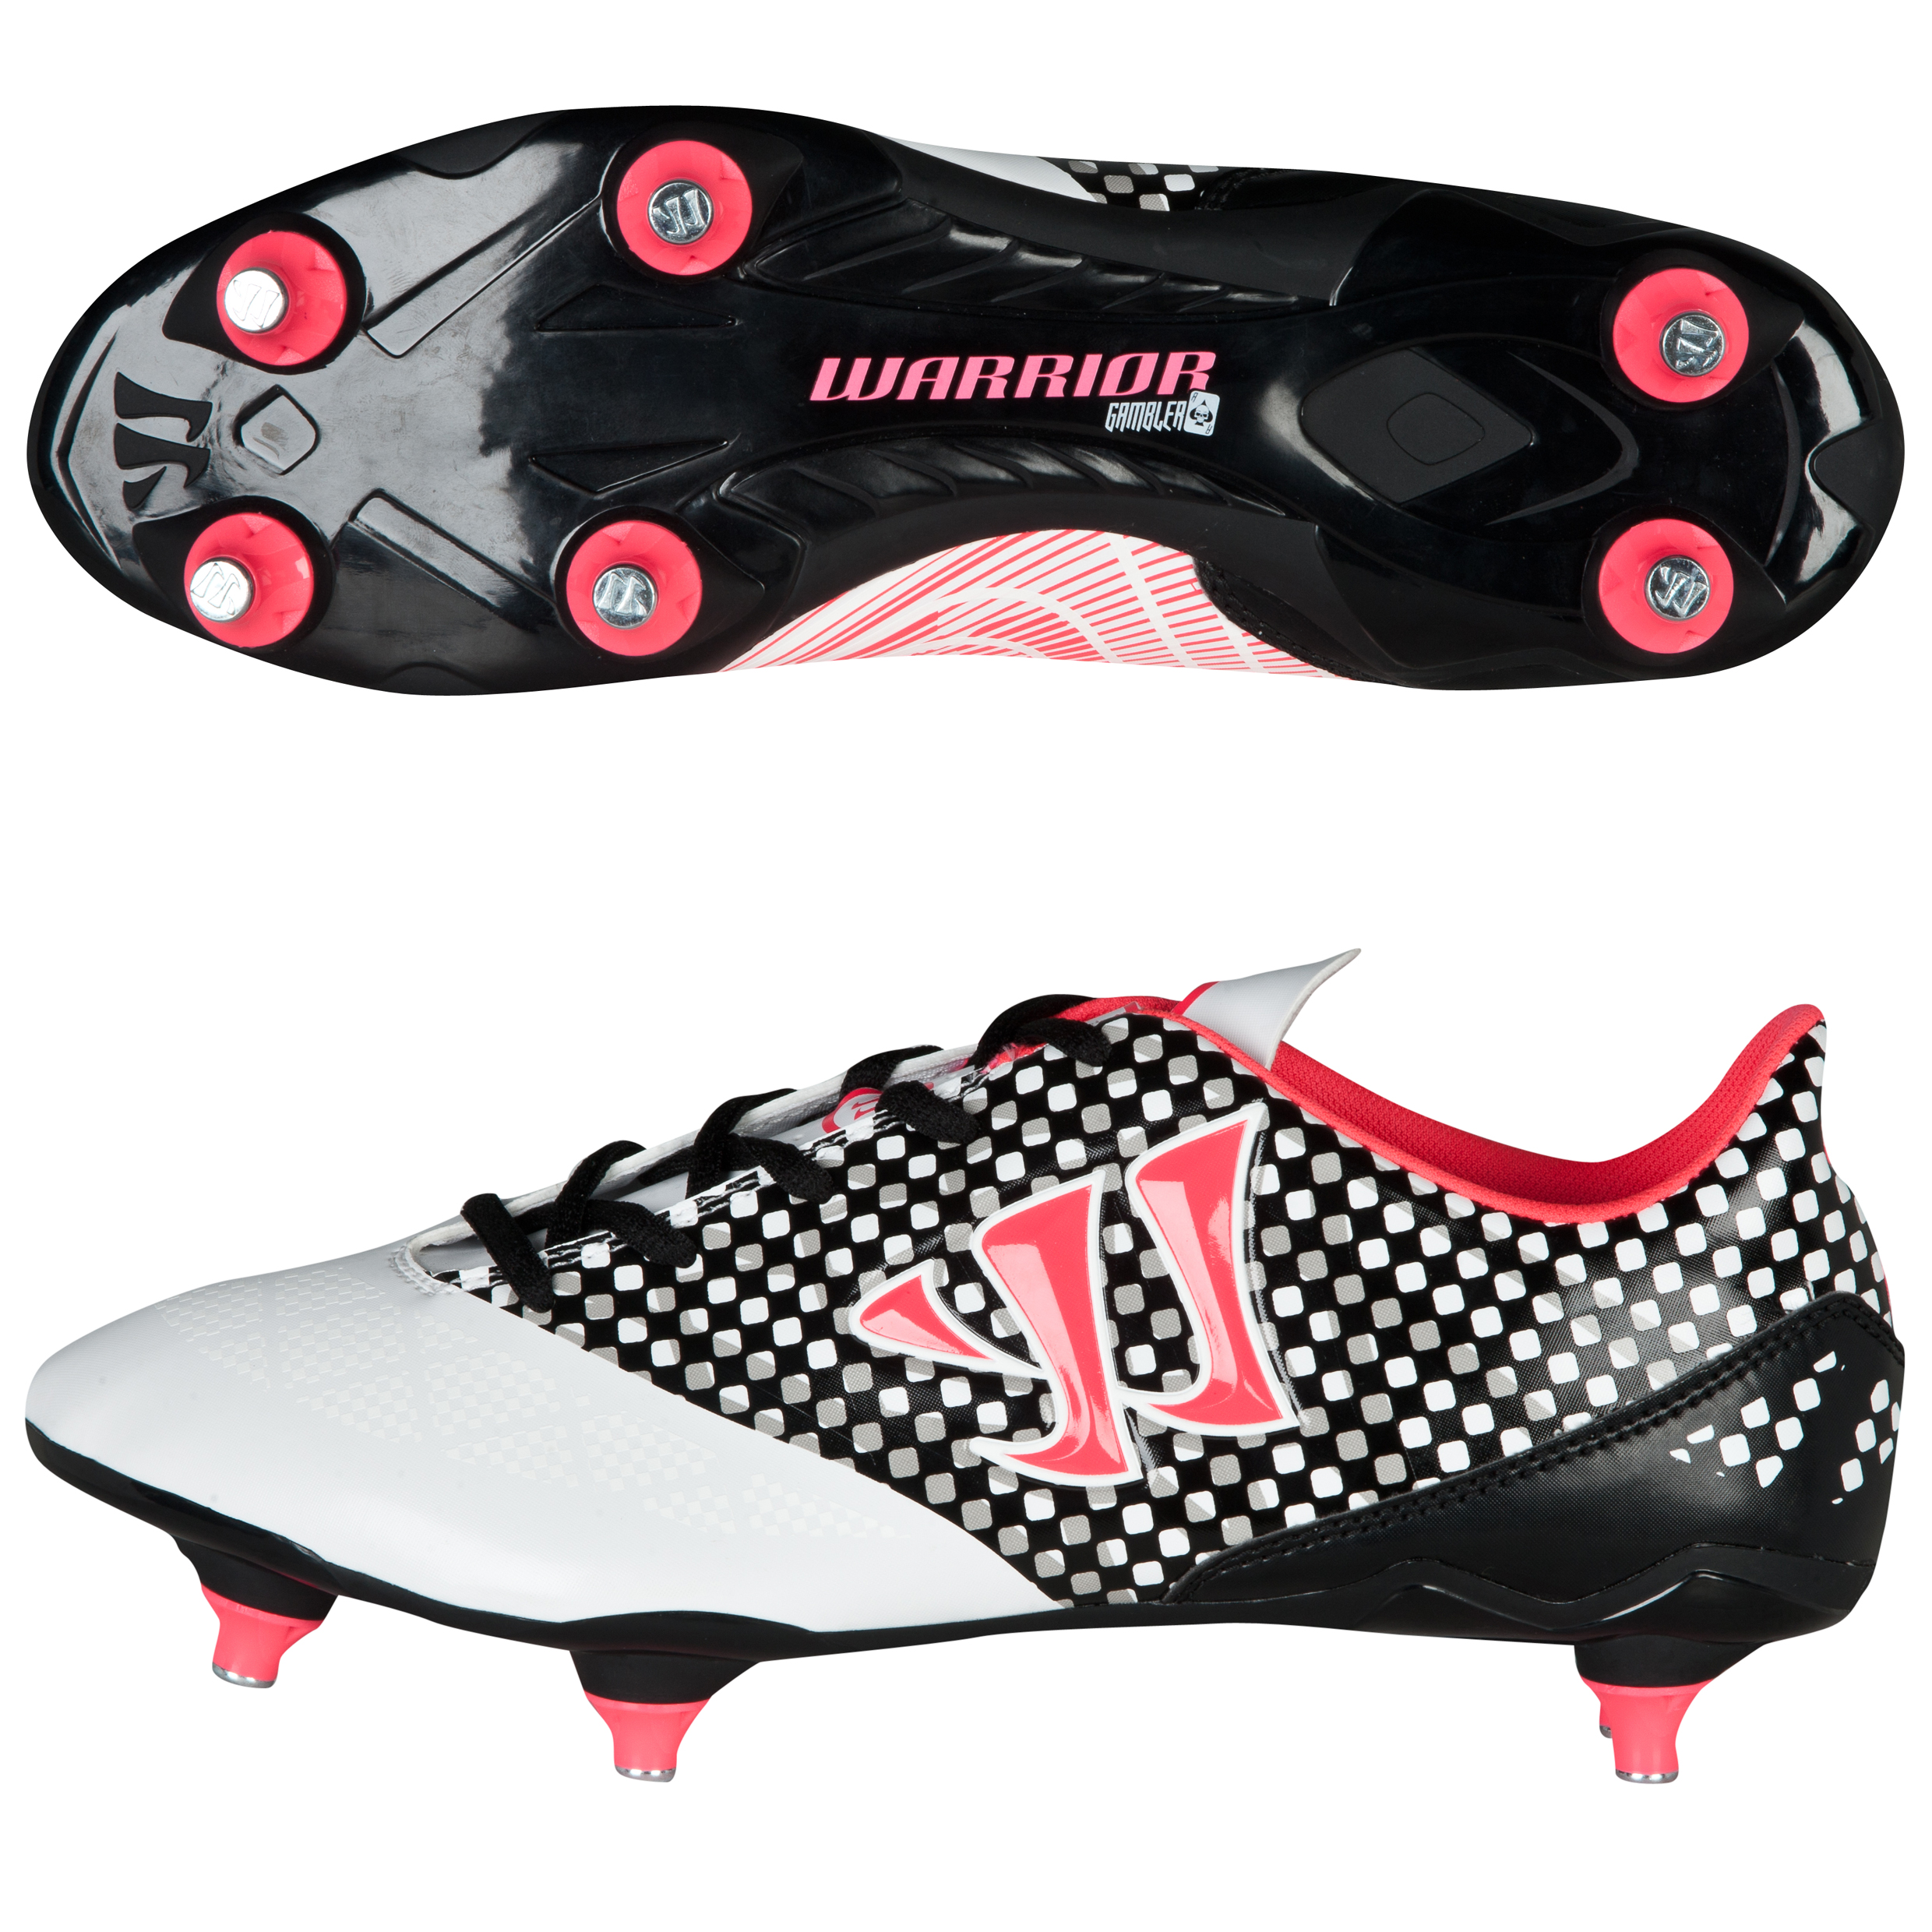 Warrior Sports Gambler Combat Soft Ground Football Boots- Wht/Blk/Pink White